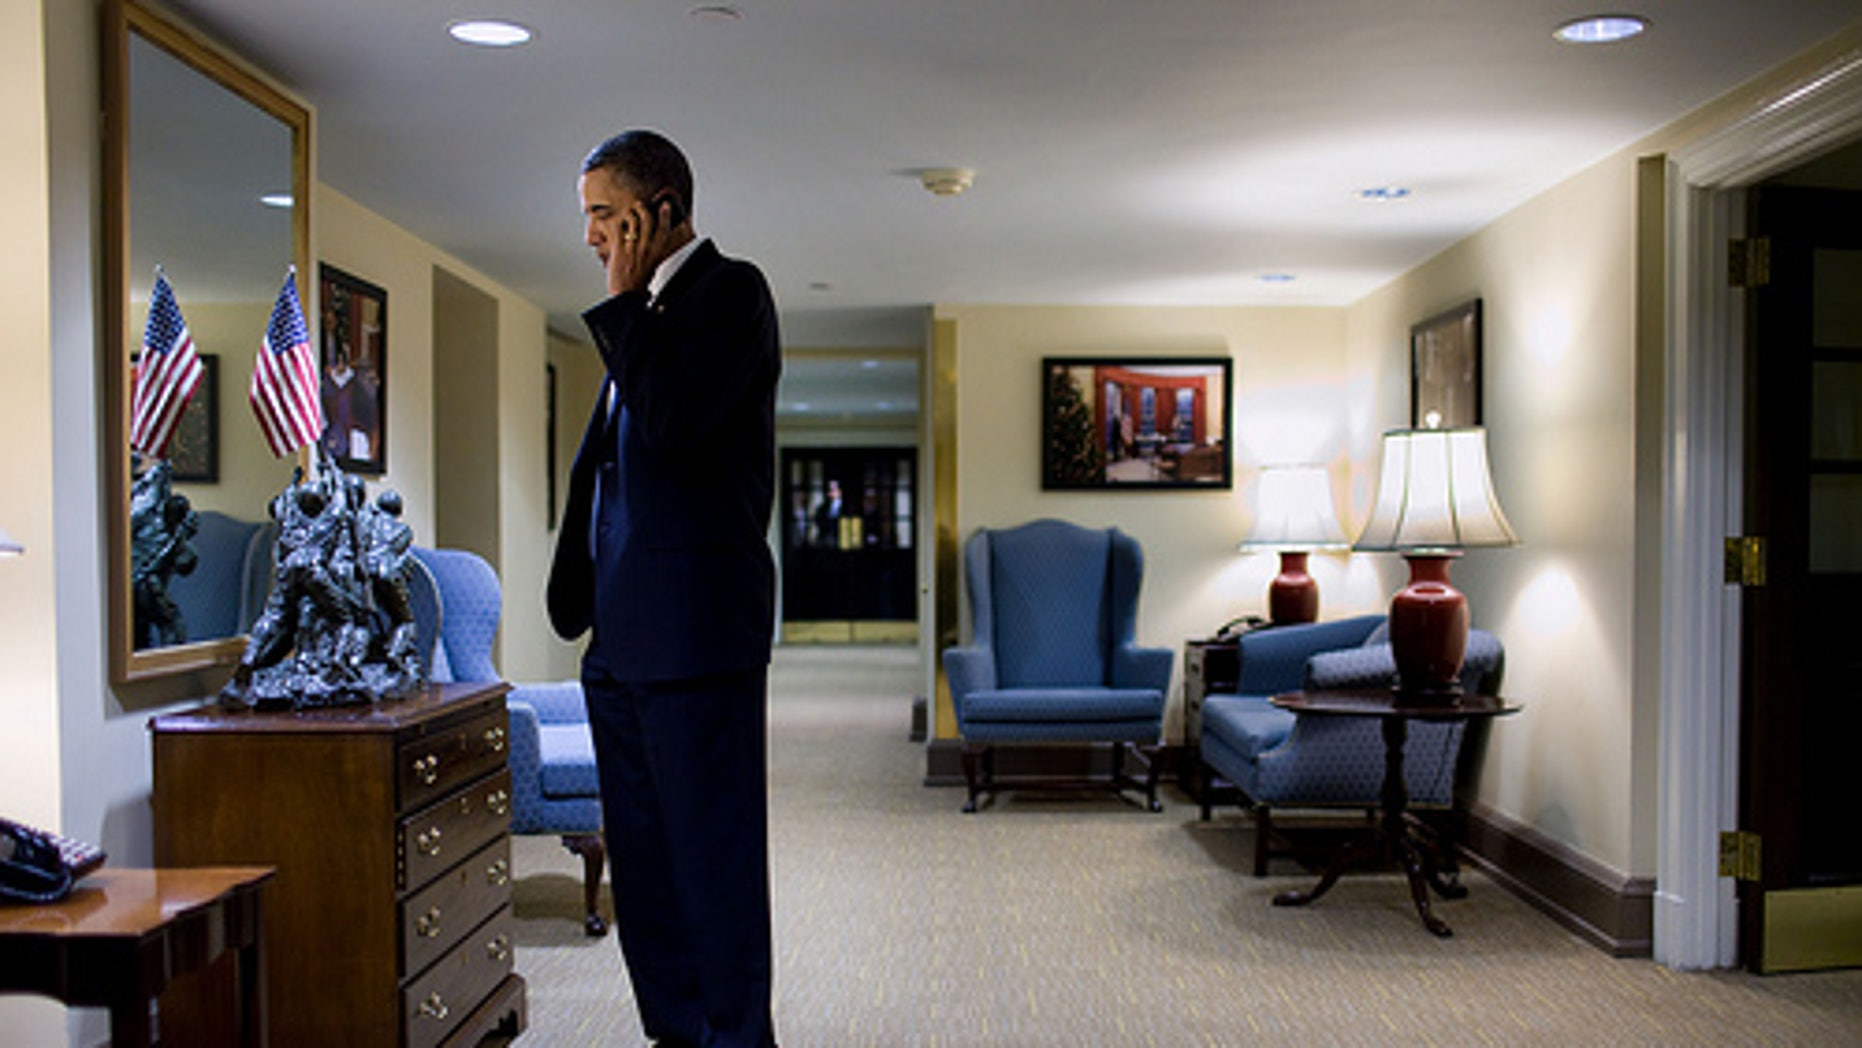 President Barack Obama talks with Arizona Gov. Jan Brewer concerning the shooting of Rep. Gabrielle Giffords and others, on a cell phone in the hallway outside the Situation Room of the White House, Saturday, Jan. 8, 2011. (Official White House Photo by Pete Souza)